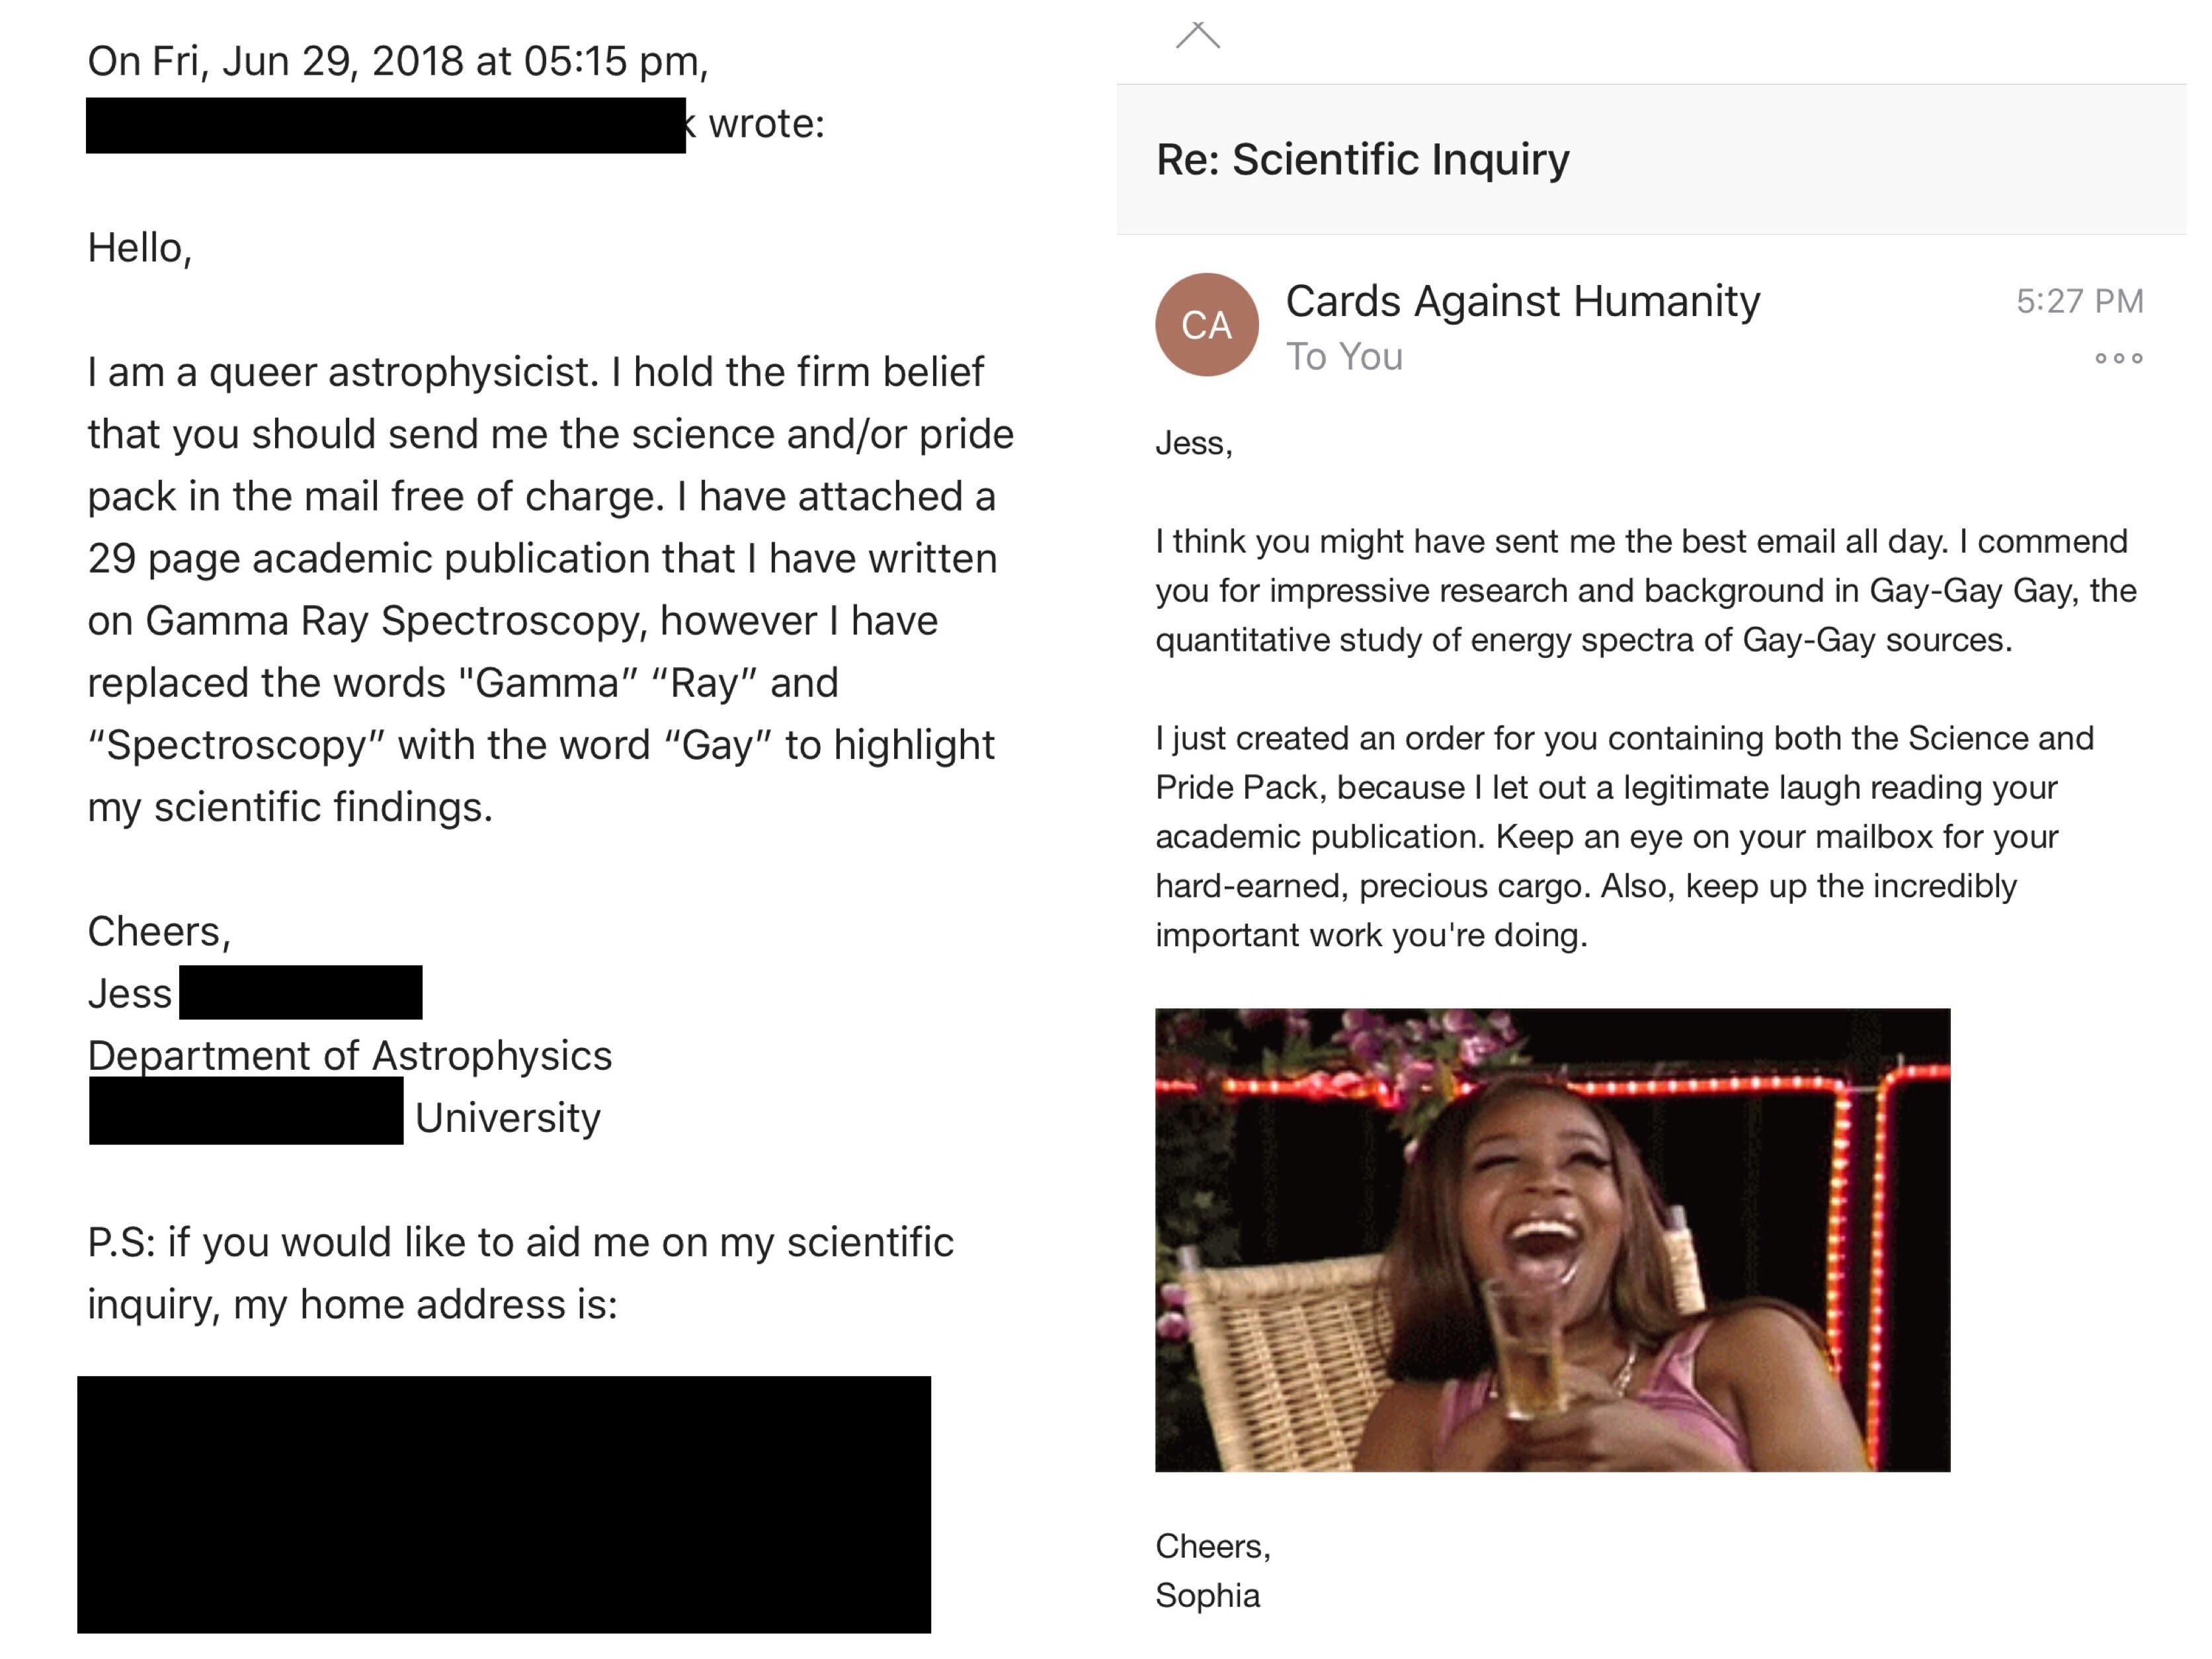 I emailed Cards Against Humanity and told them I was a gay scientist and now they're sending me the pride pack and the science pack for free